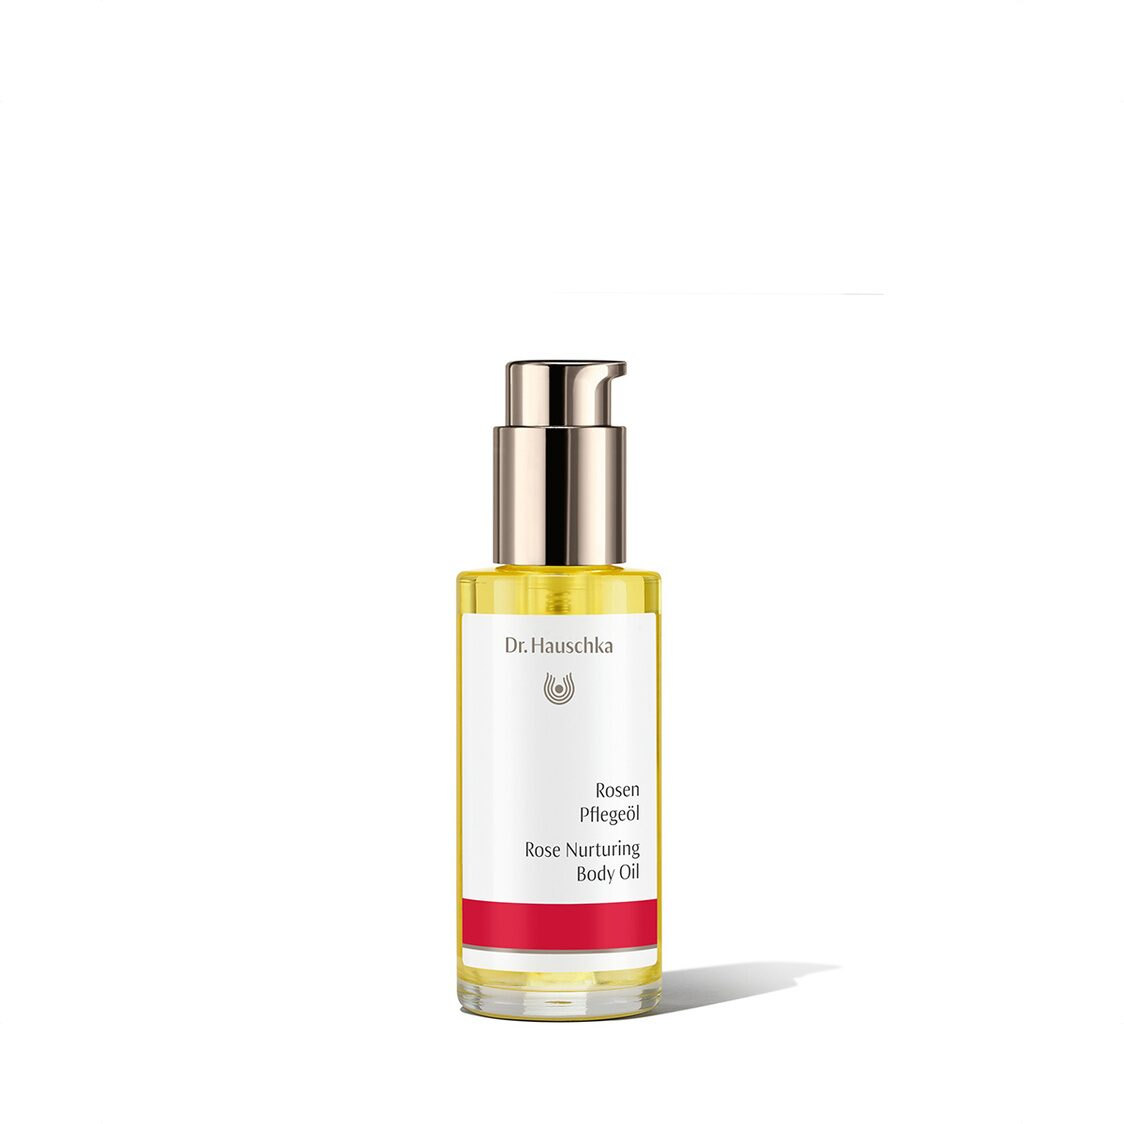 Rose Nurturing Body Oil 75ml